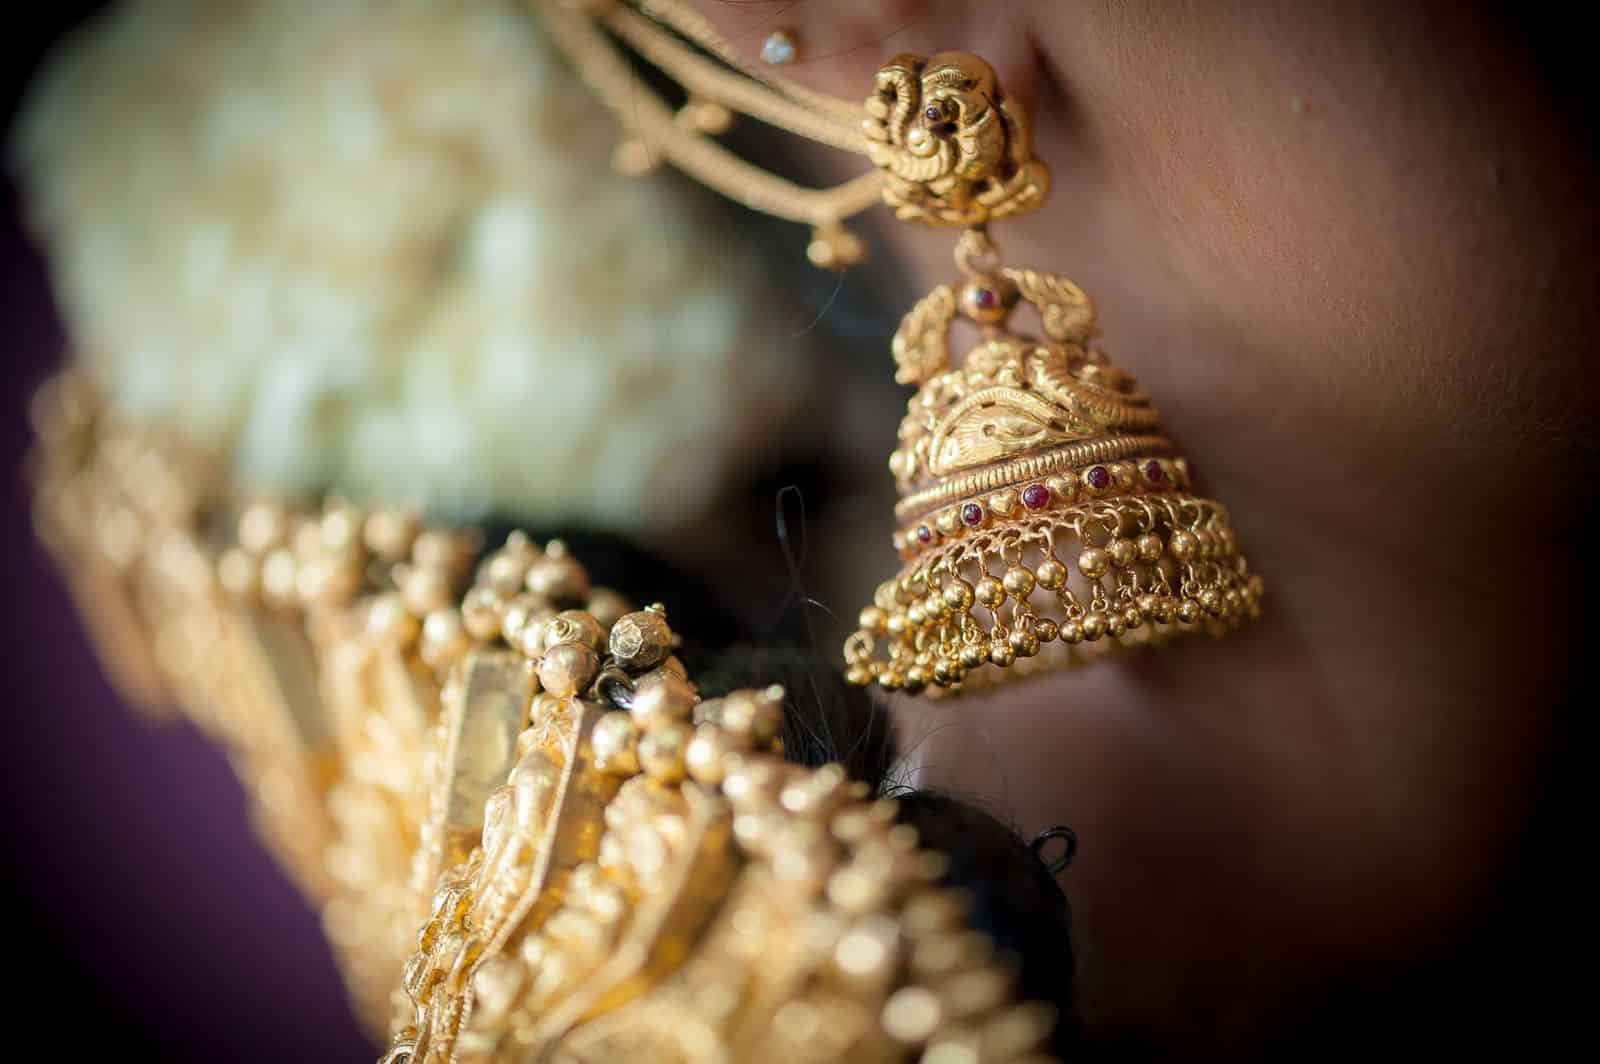 anoop-wedding-photographer-detail-gold-jhumka-earrings